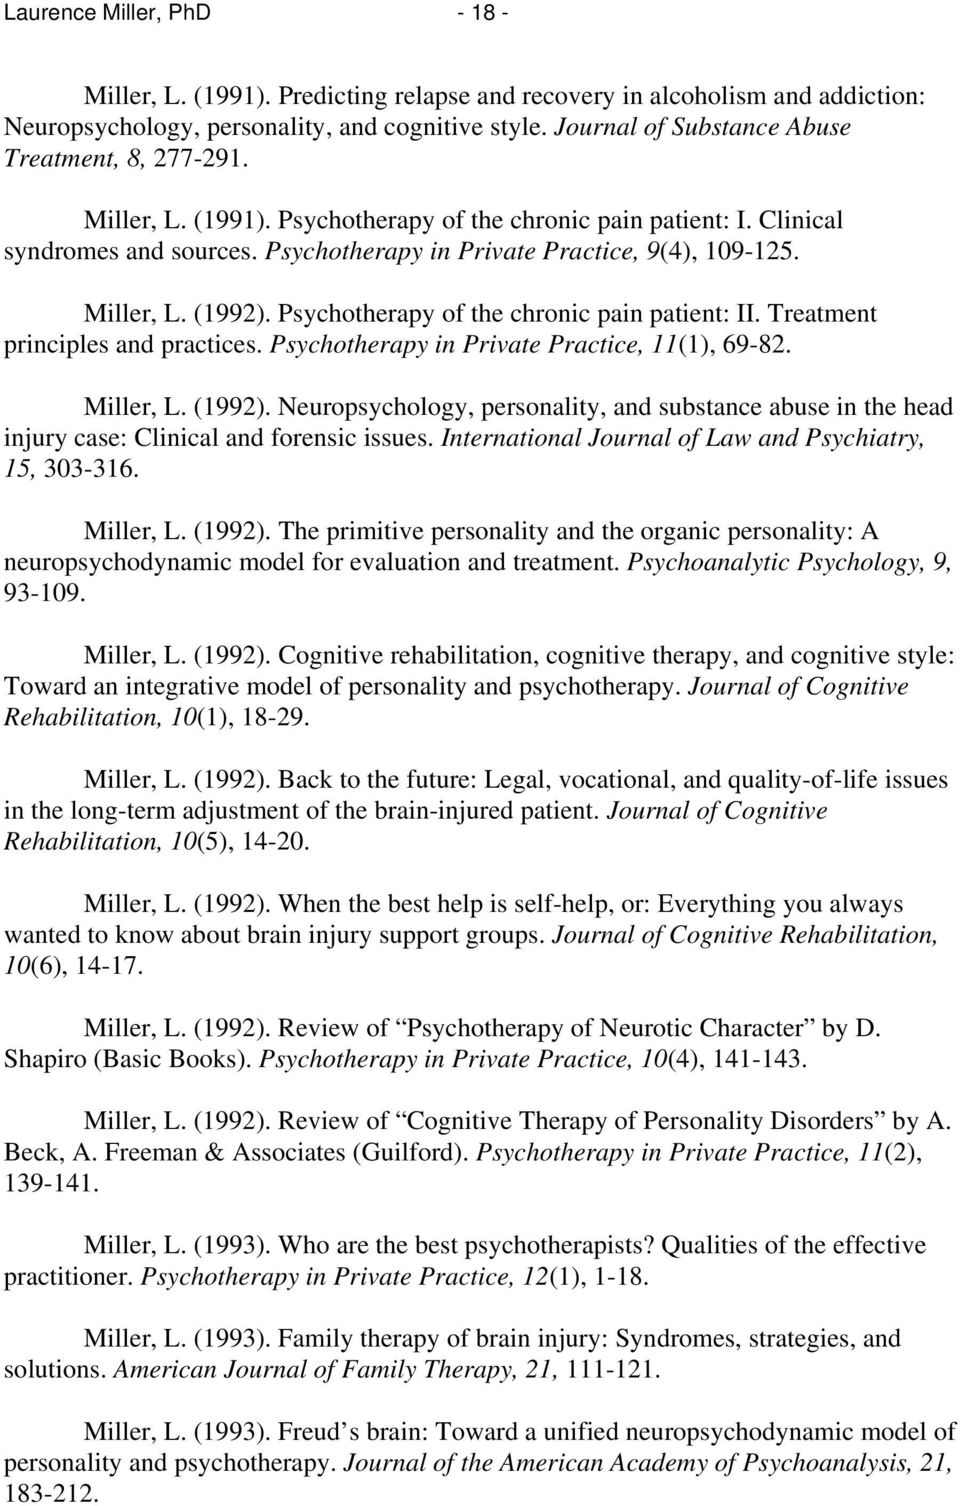 Miller, L. (1992). Psychotherapy of the chronic pain patient: II. Treatment principles and practices. Psychotherapy in Private Practice, 11(1), 69-82. Miller, L. (1992). Neuropsychology, personality, and substance abuse in the head injury case: Clinical and forensic issues.